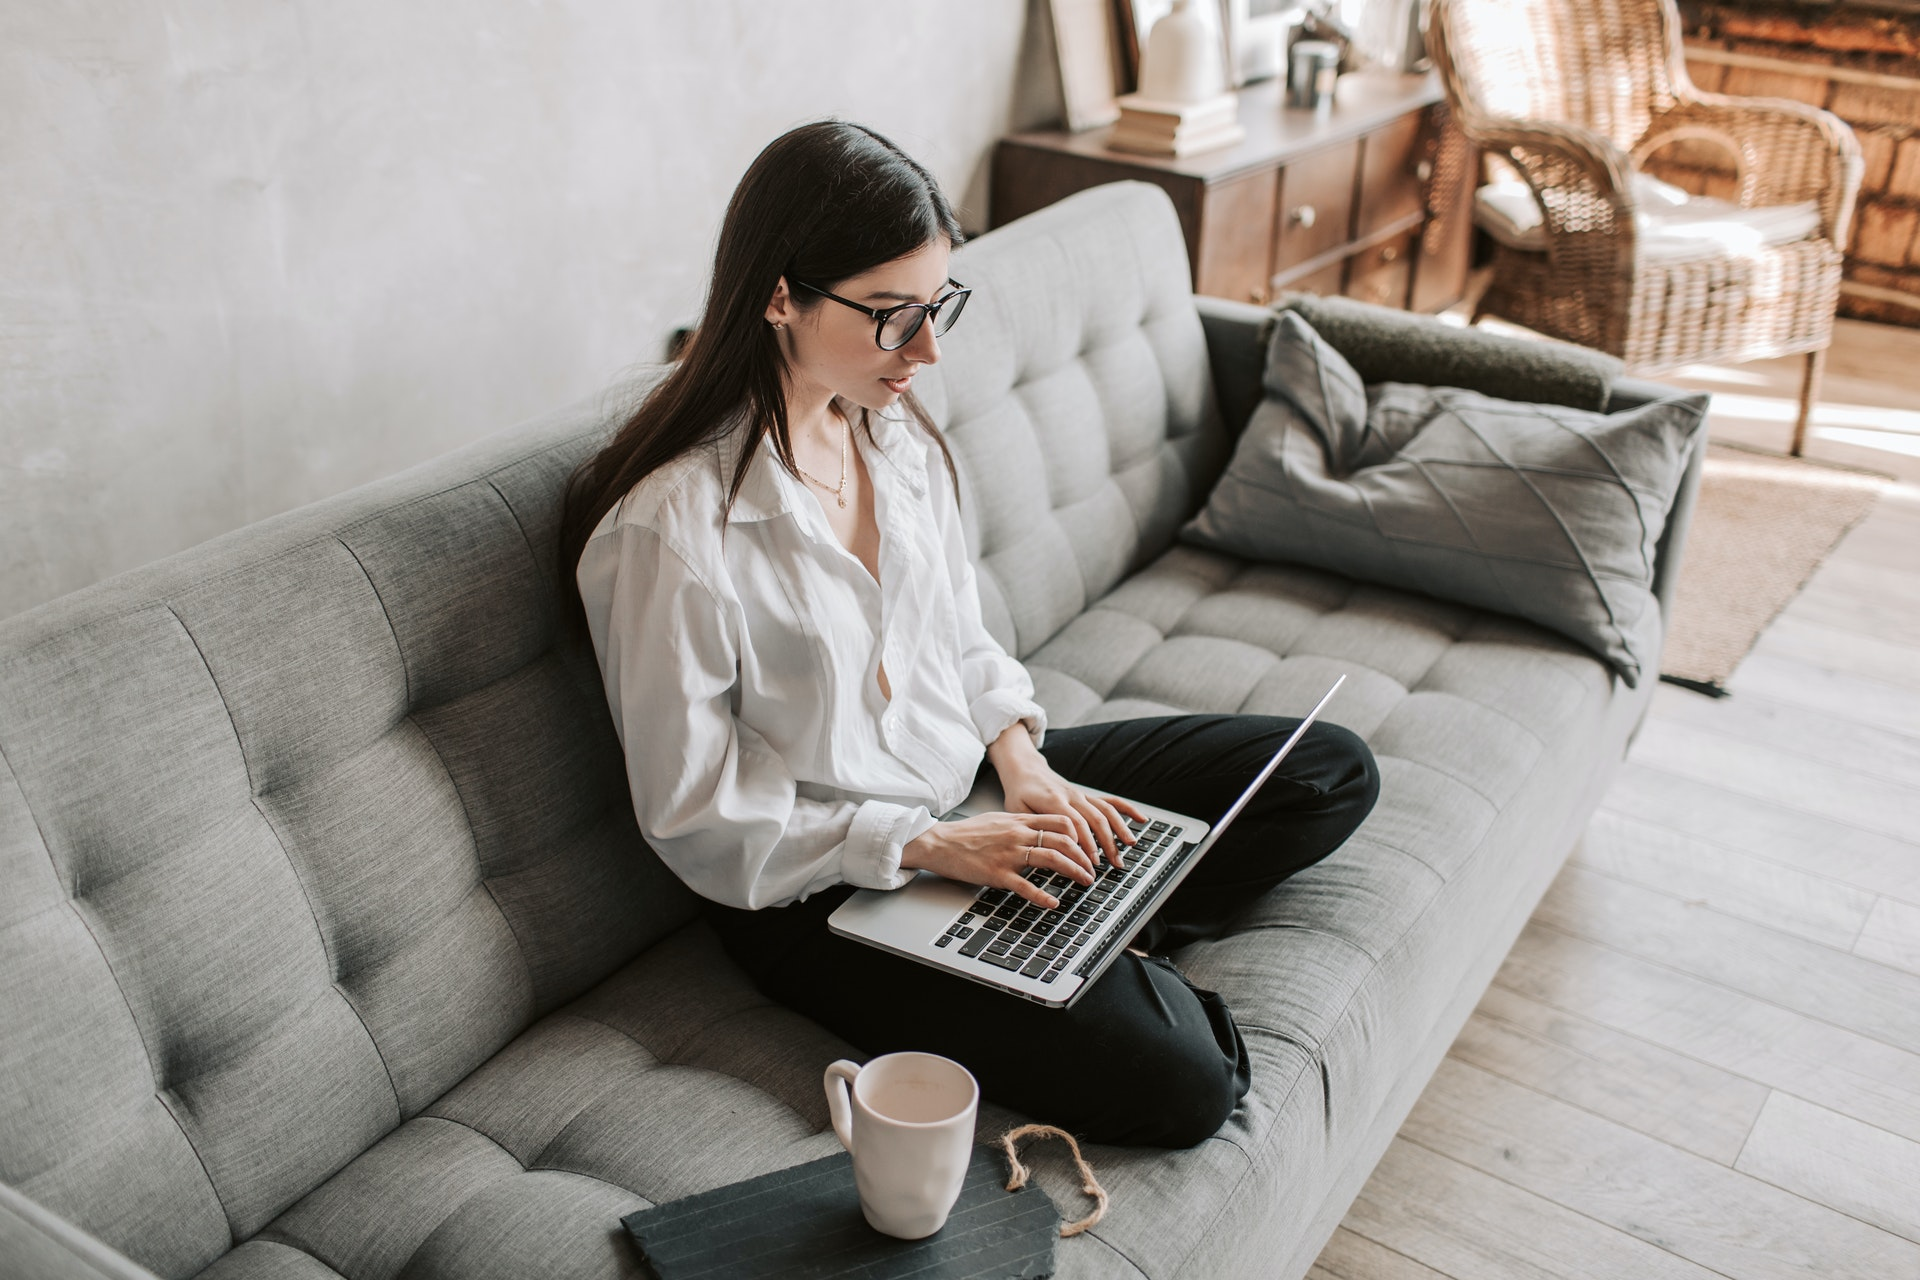 best practices for working remotely